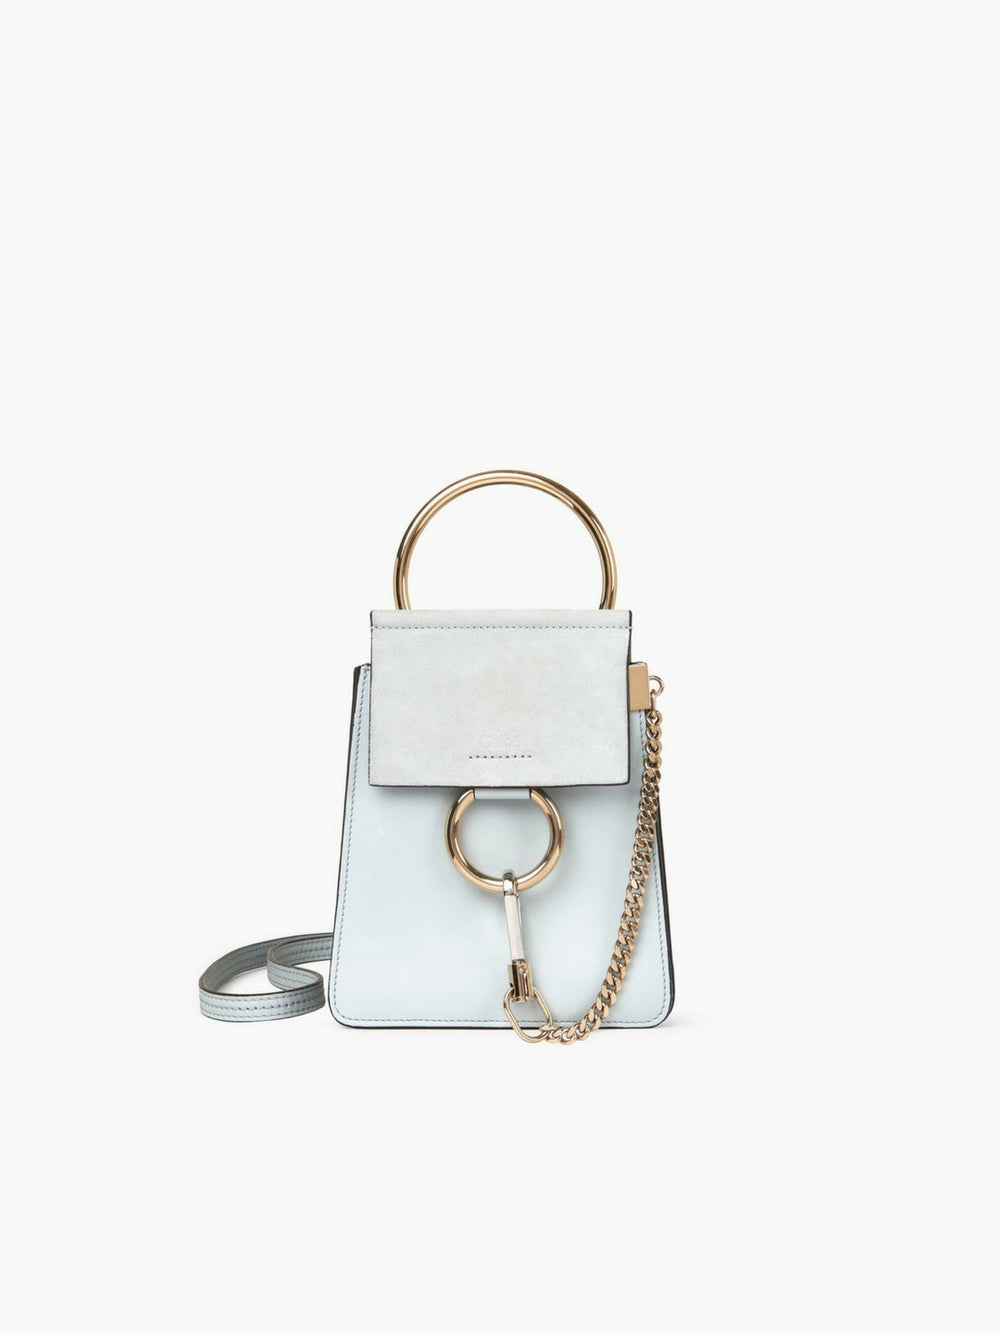 chloe-faye-mini-bracelet-bag-airy-grey